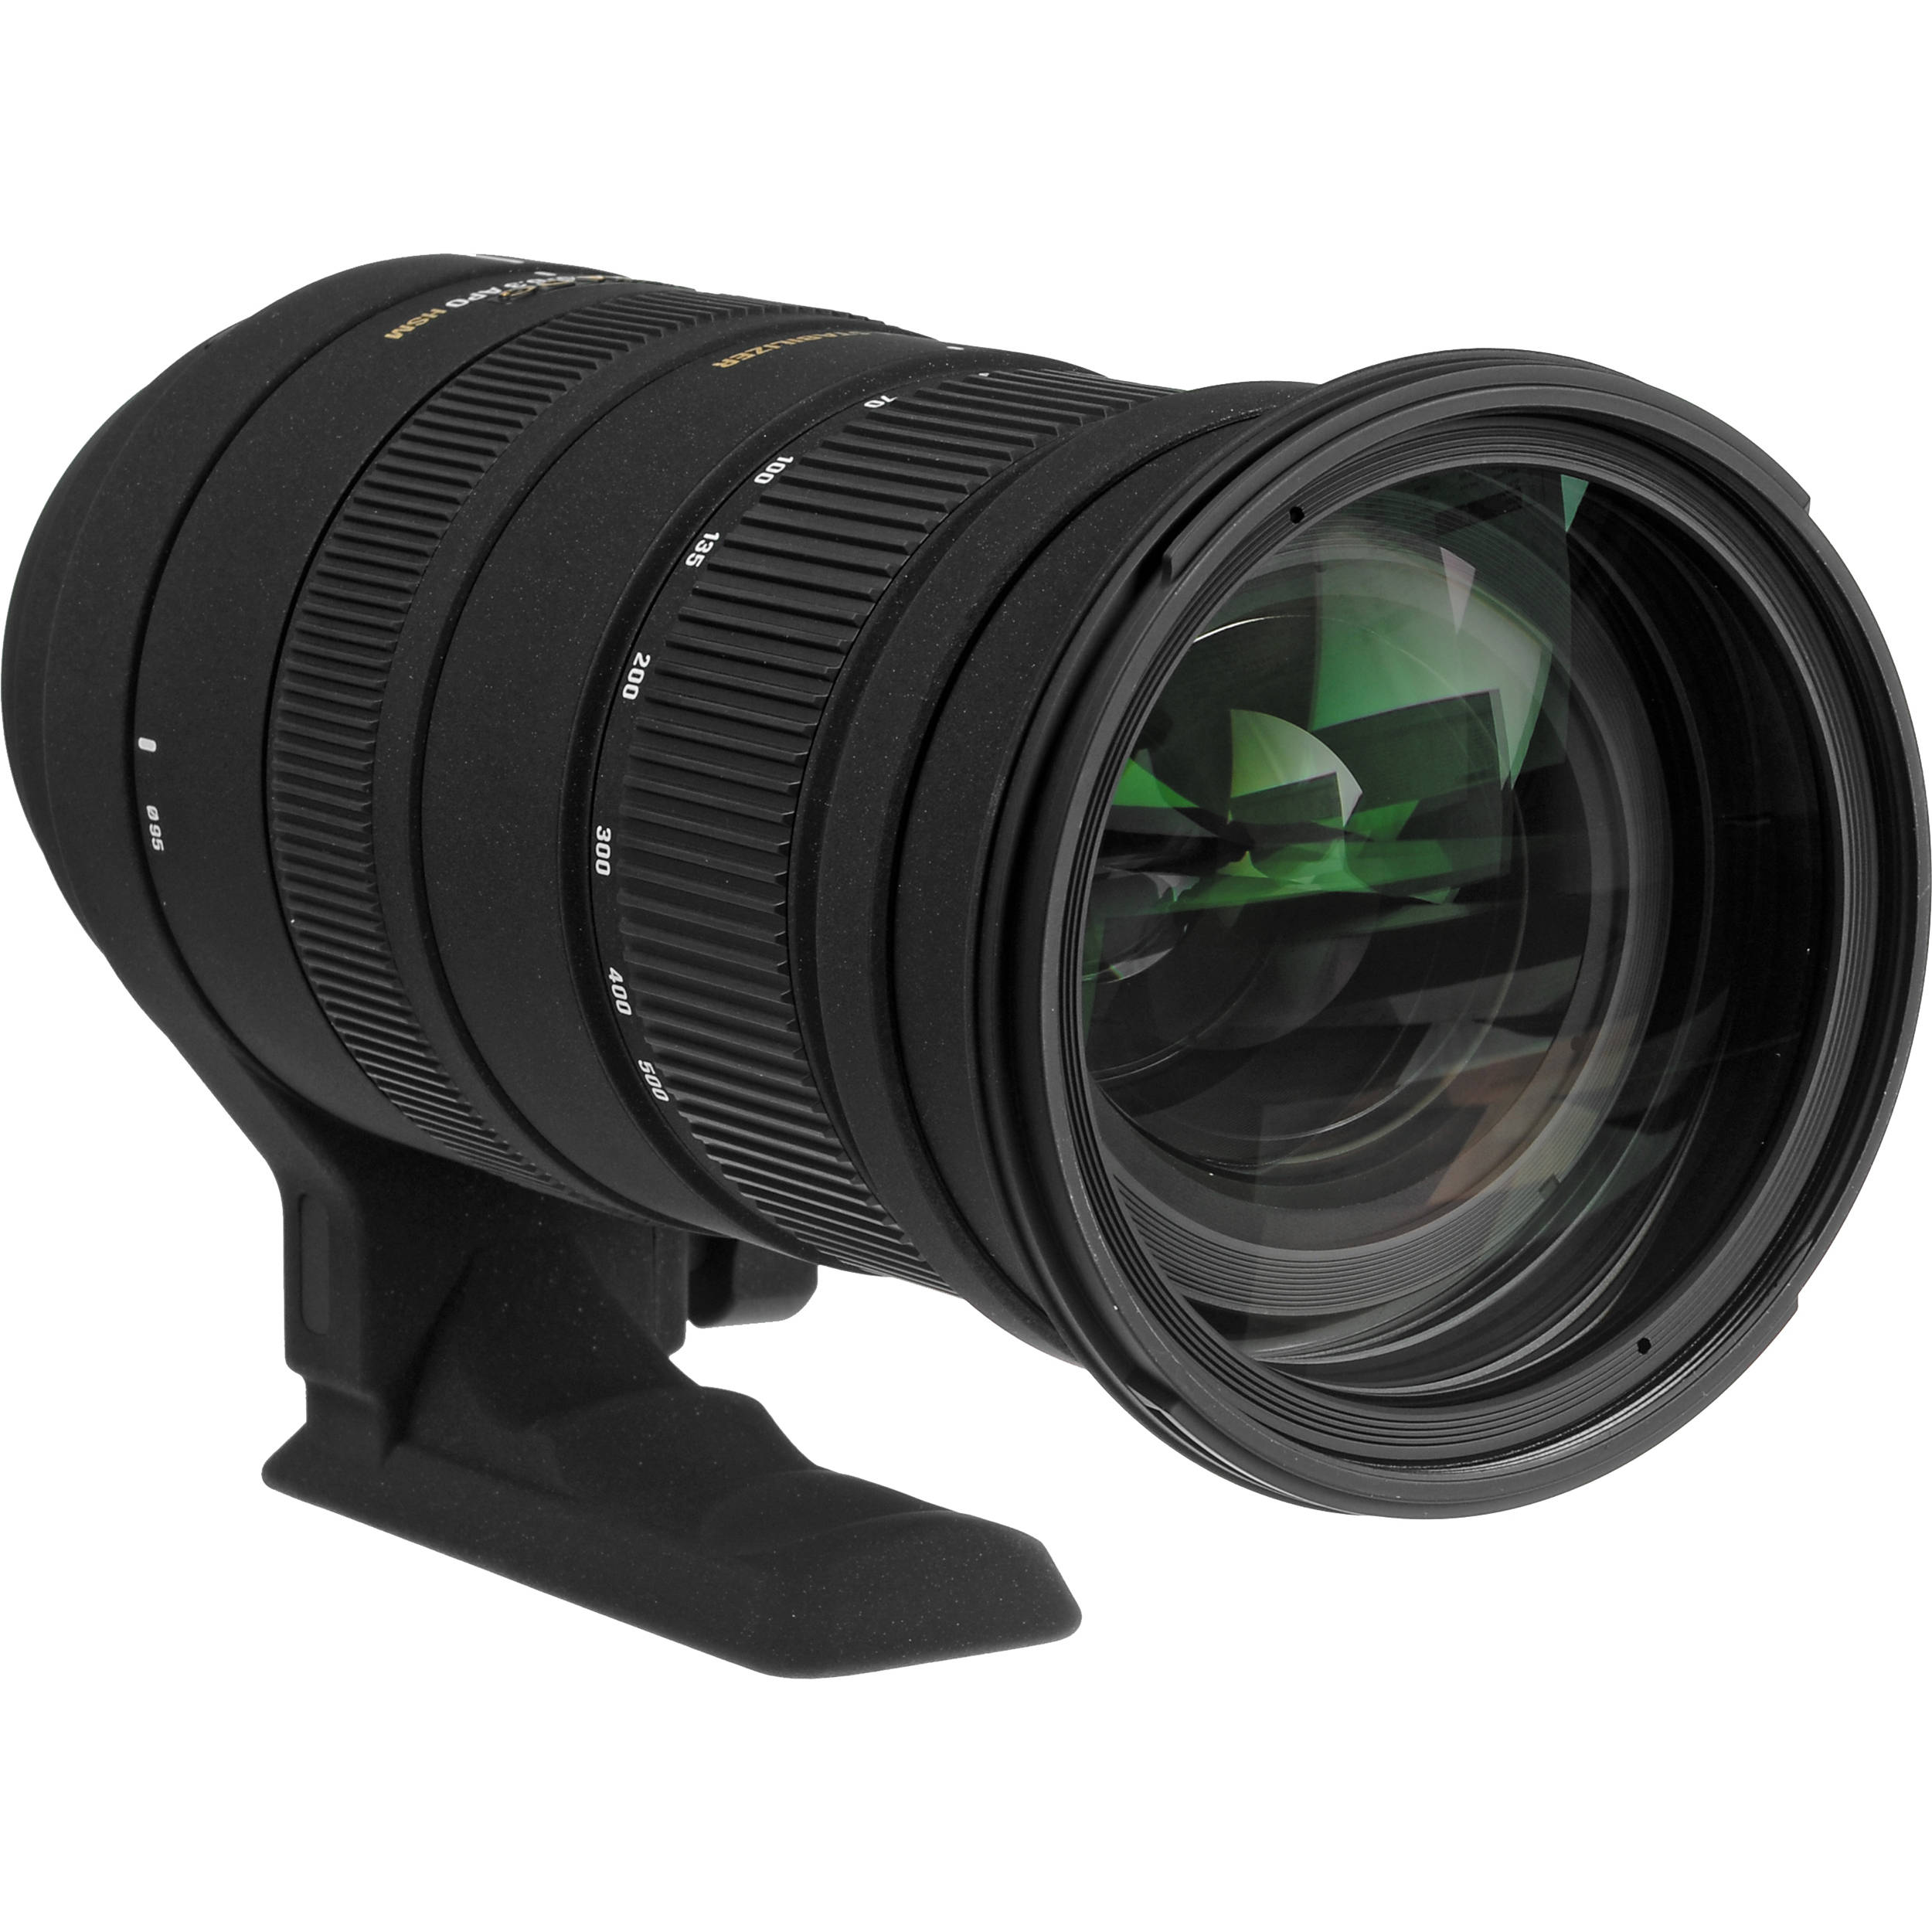 sigma 50 500mm f 4 5 6 3 apo dg os hsm lens for nikon. Black Bedroom Furniture Sets. Home Design Ideas